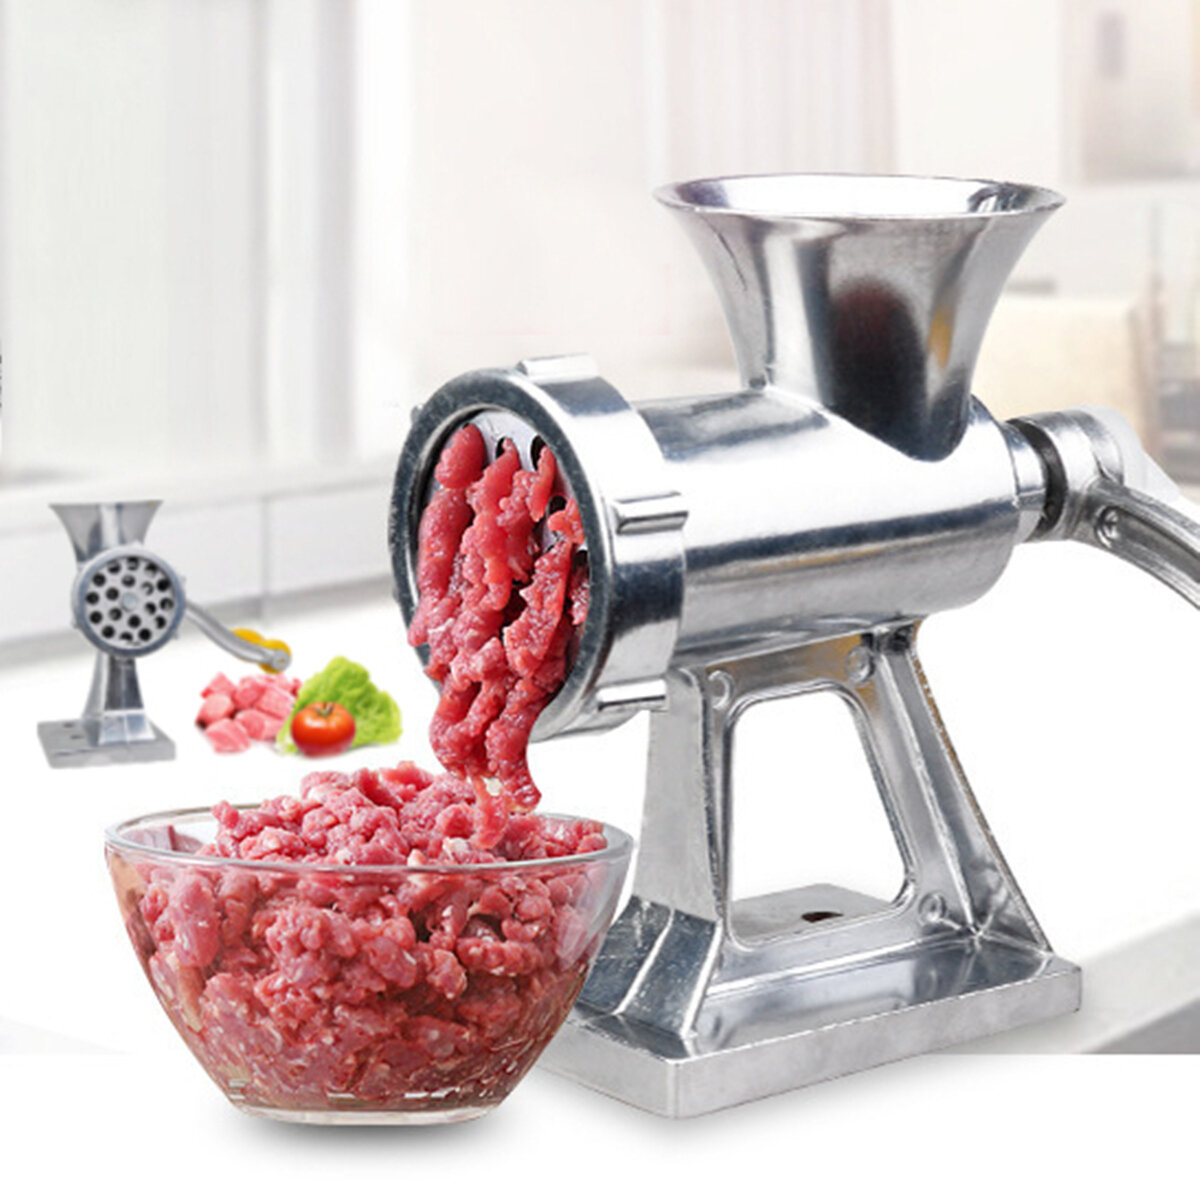 Food Grinders & Mills Healthy Multi-use Mincer Hand Meat Grinder Kitchen Gadget for Meat Sausage Noodle Small Appliances